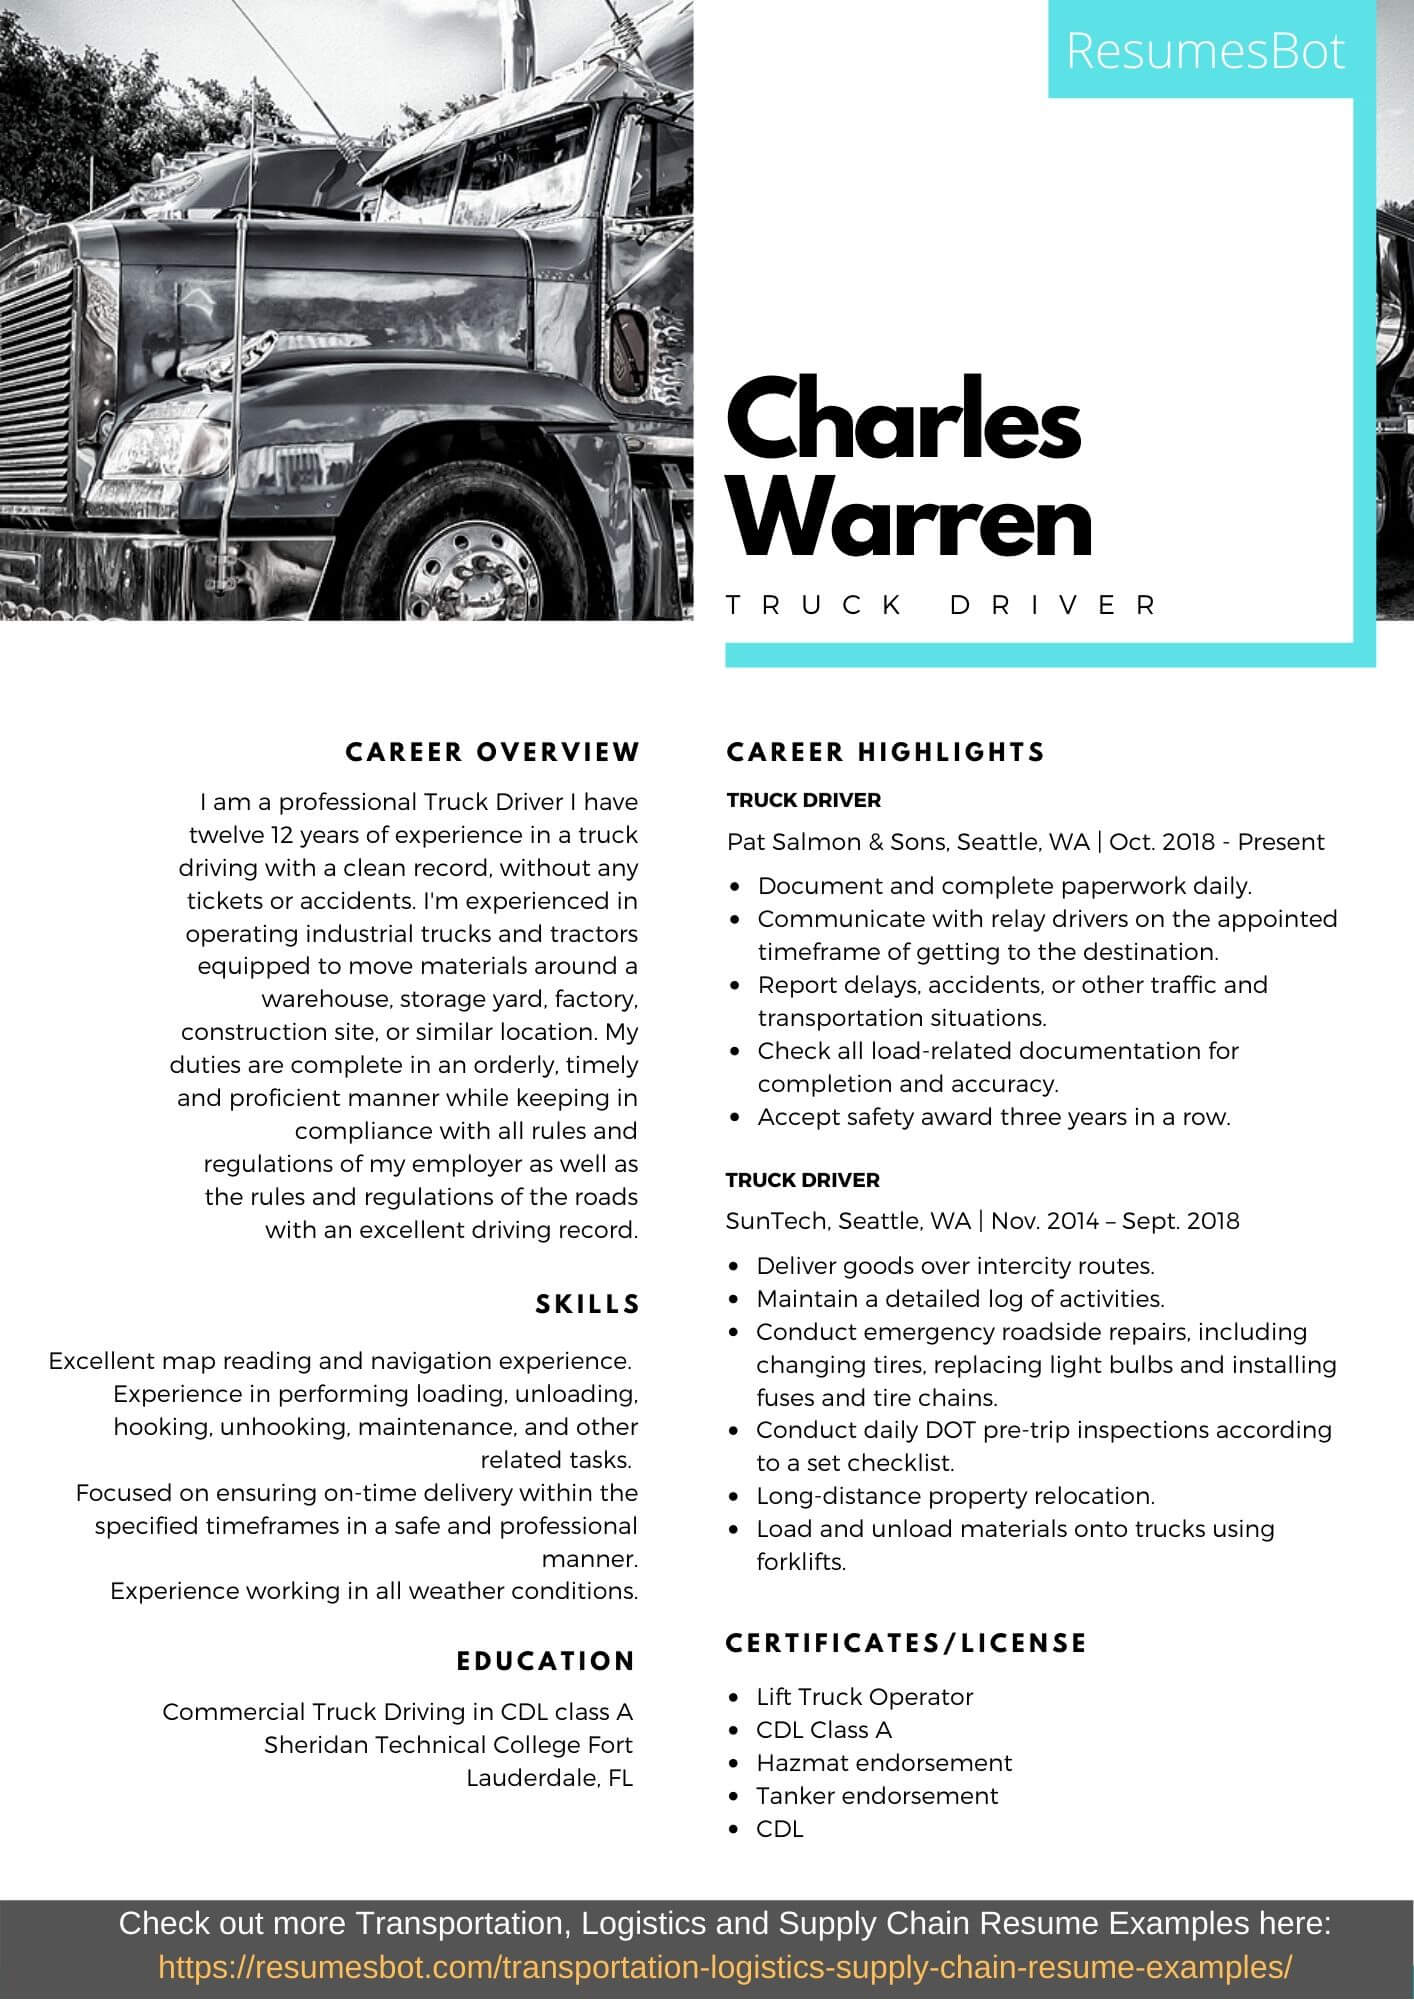 truck driver resume samples and tips pdf resumes bot sample example foreman cal poly Resume Truck Driver Resume Sample